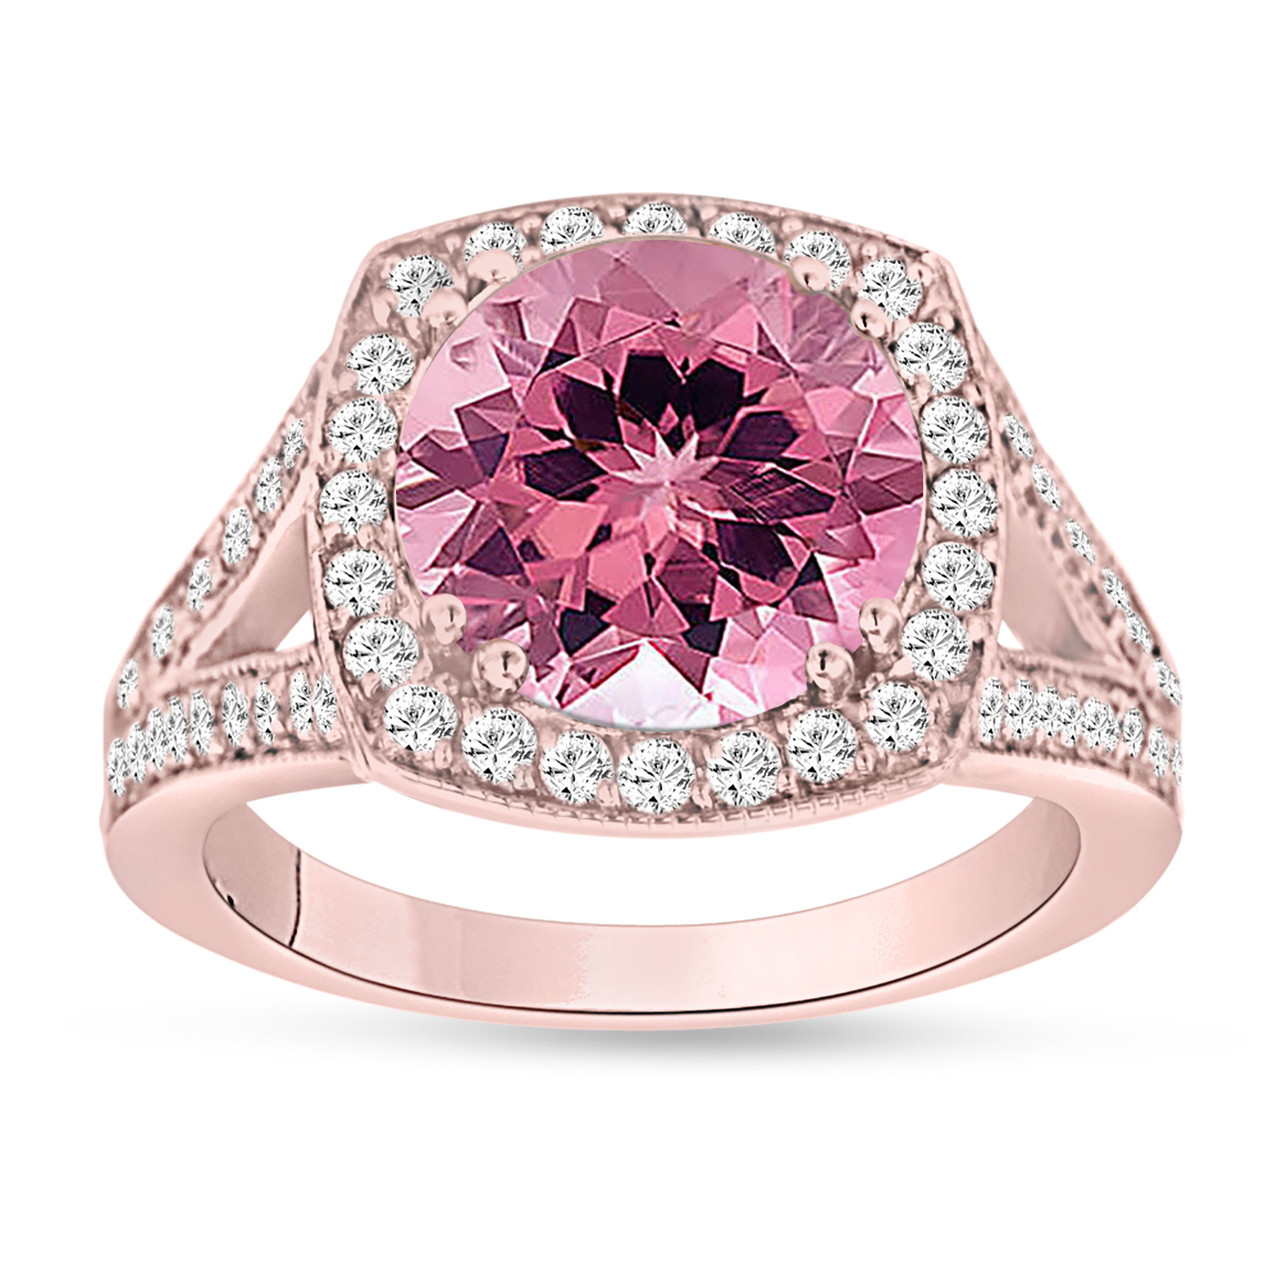 Pink Tourmaline Engagement Ring 14K Rose Gold 3.25 Carat Pave Halo ...